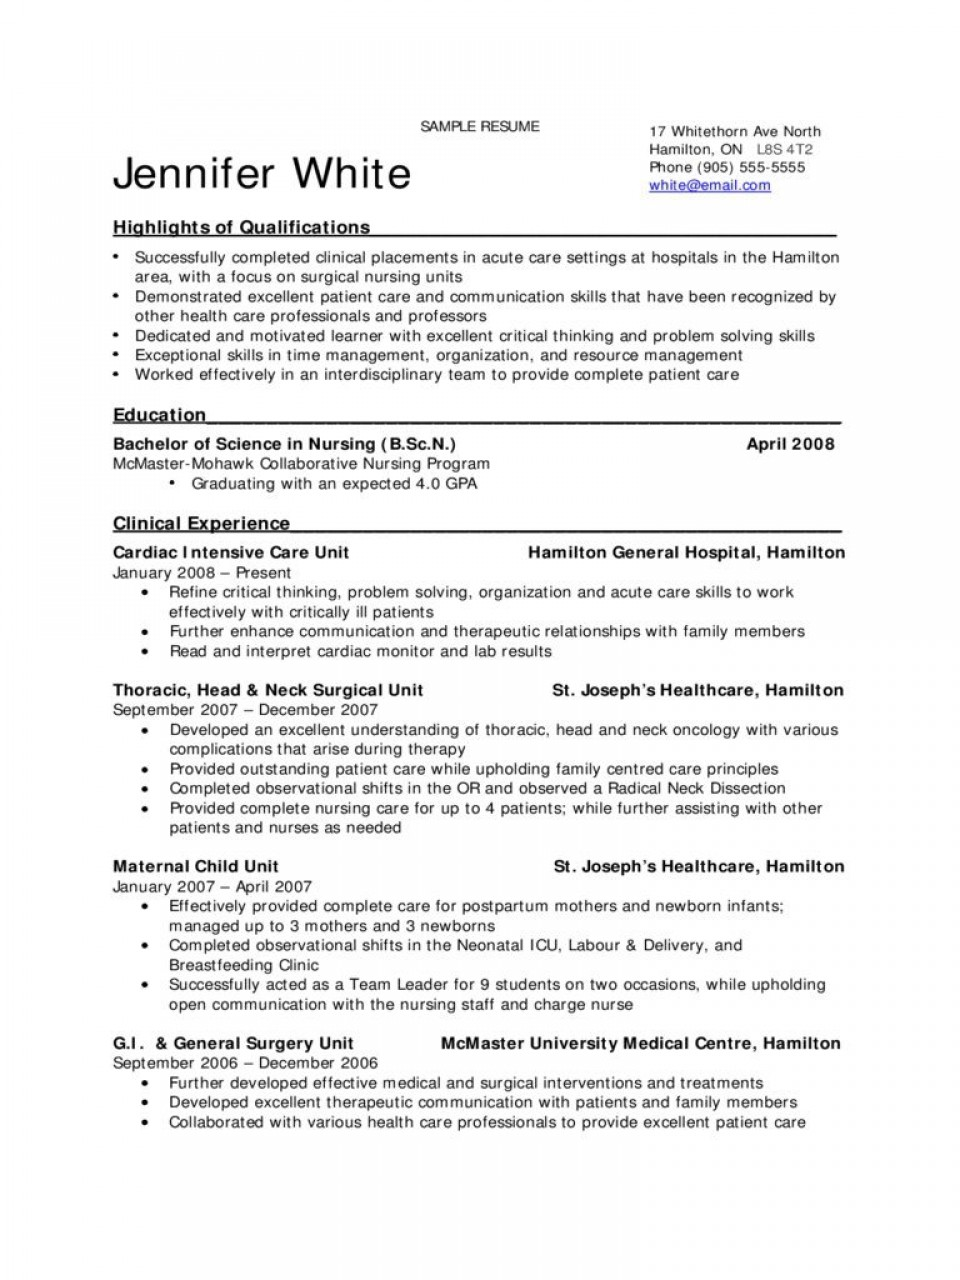 009 Excellent New Grad Nursing Resume Template Example  Graduate Nurse Practitioner960